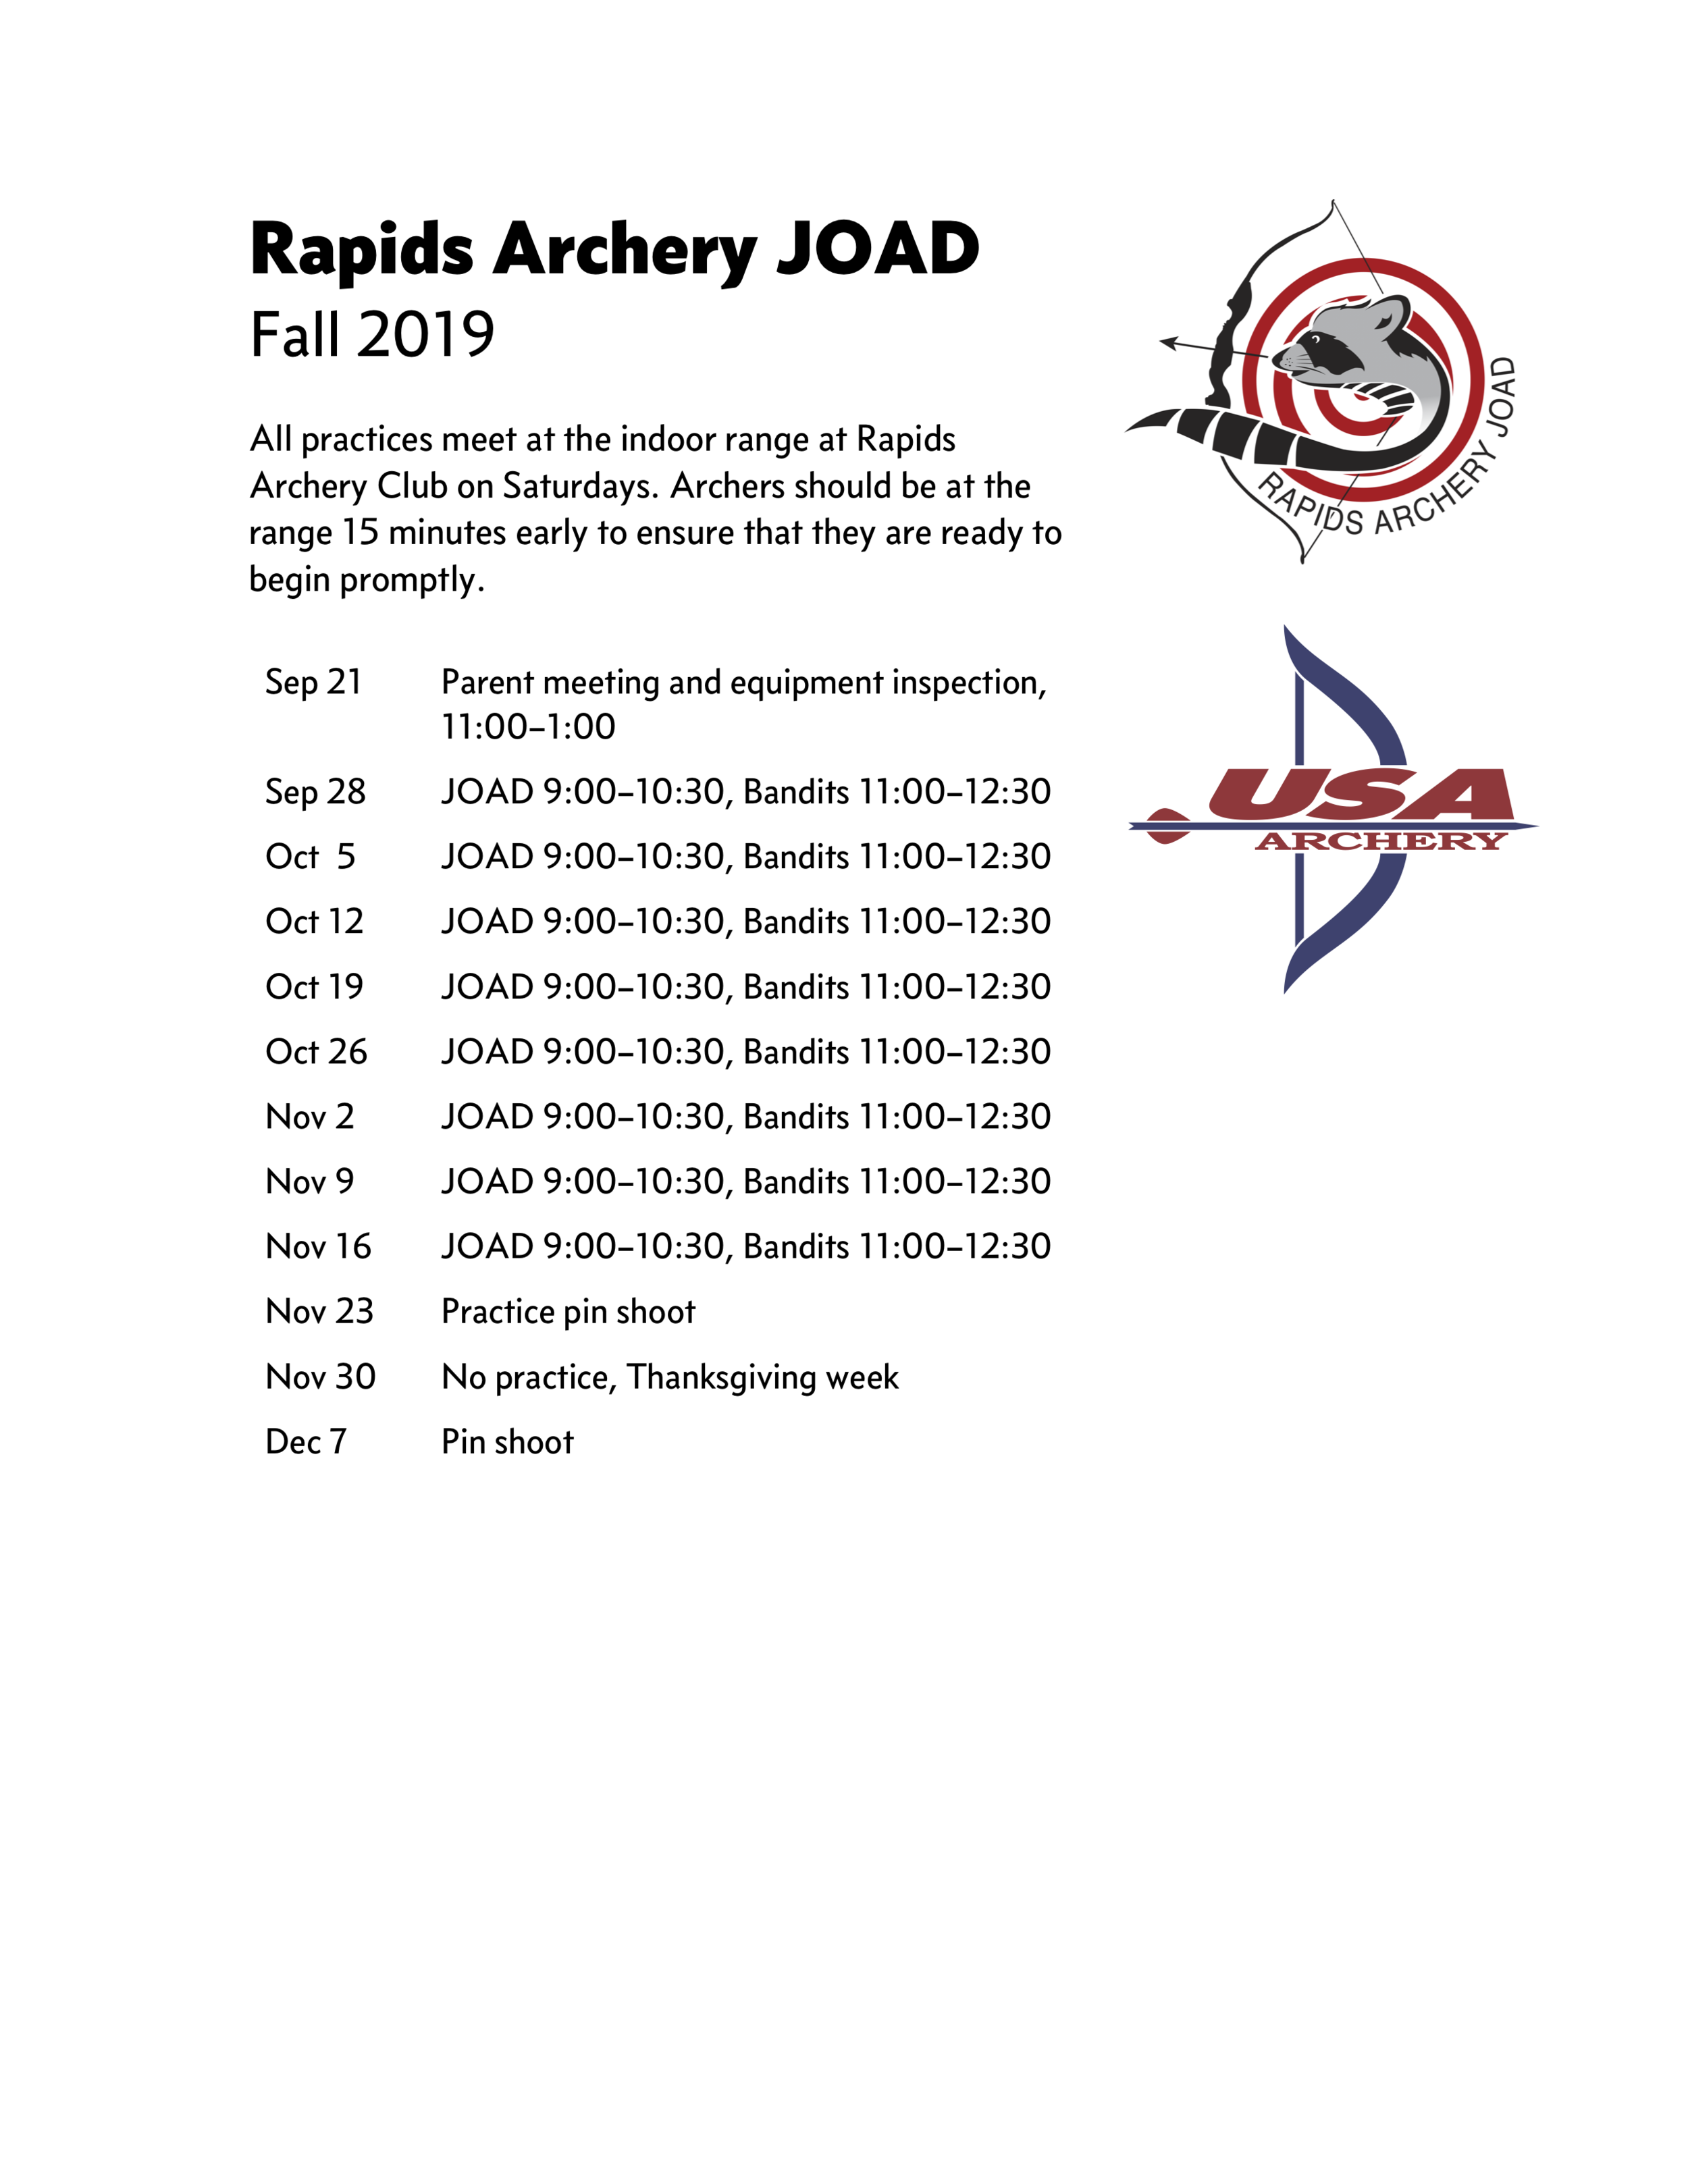 Rapids Archery JOAD fall 2019 schedule.png